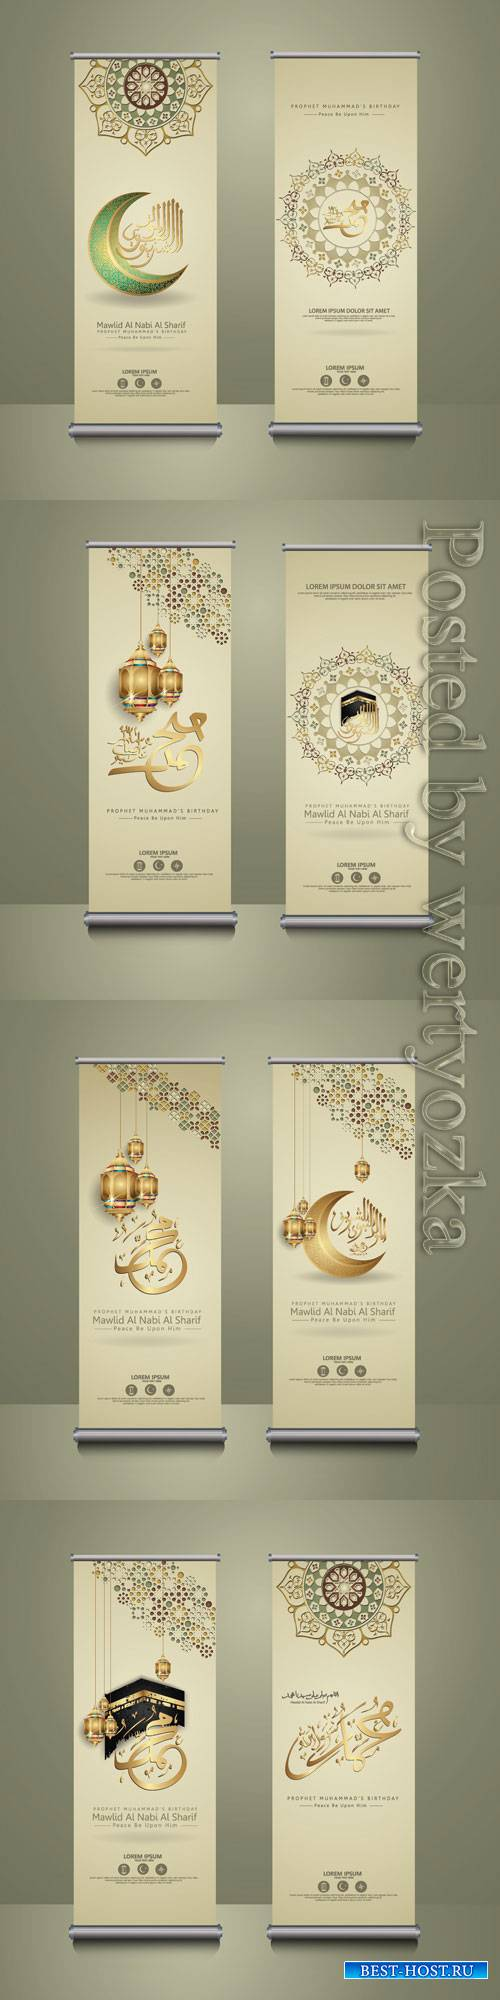 Roll up banner, prophet Muhammad in arabic calligraphy with golden Islamic ornamental